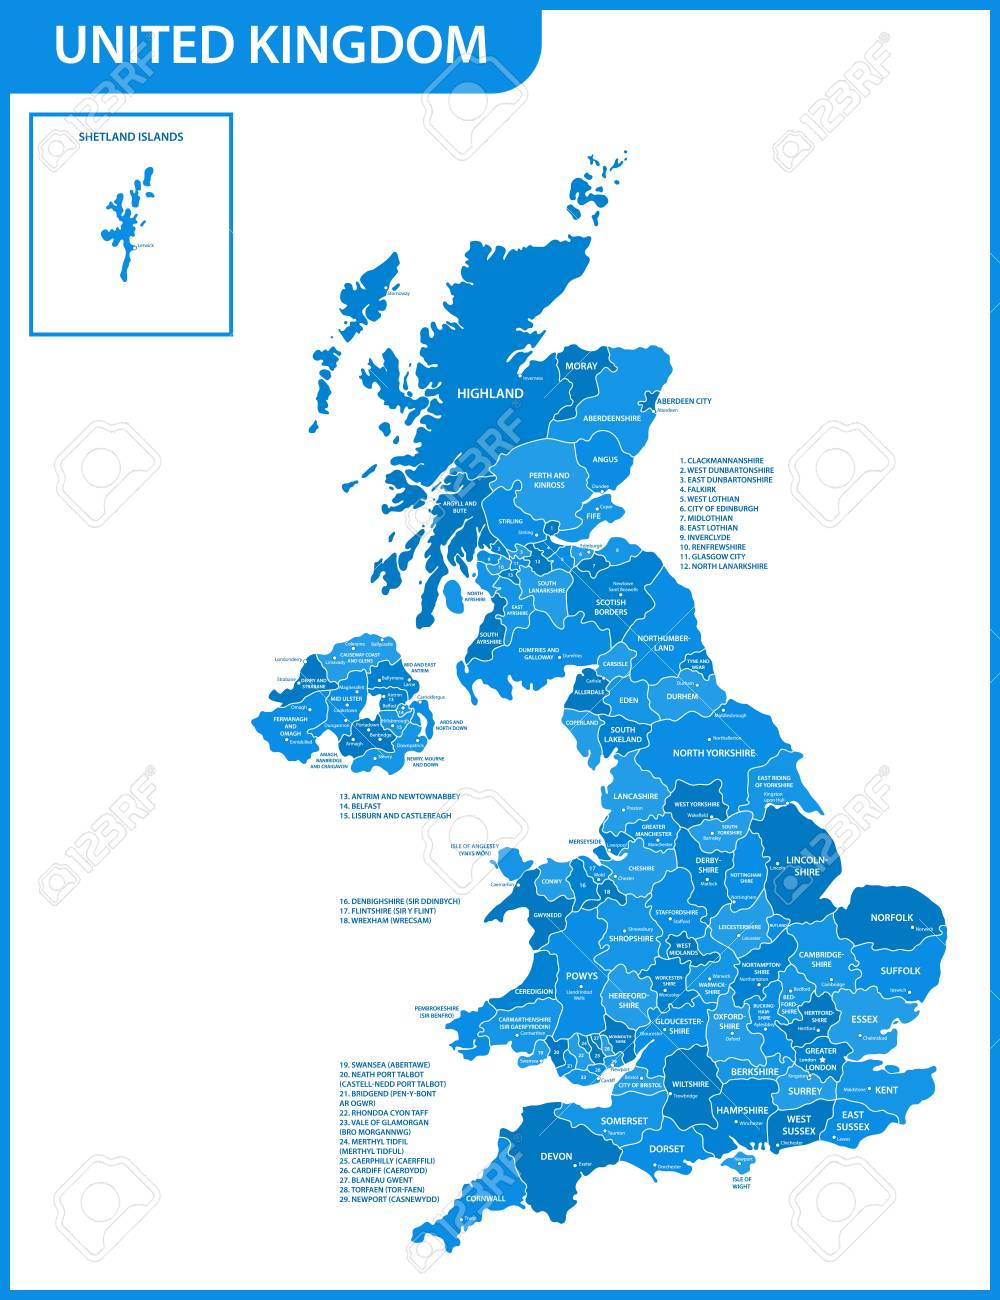 Map Of Uk With Regions.The Detailed Map Of The United Kingdom With Regions Or States